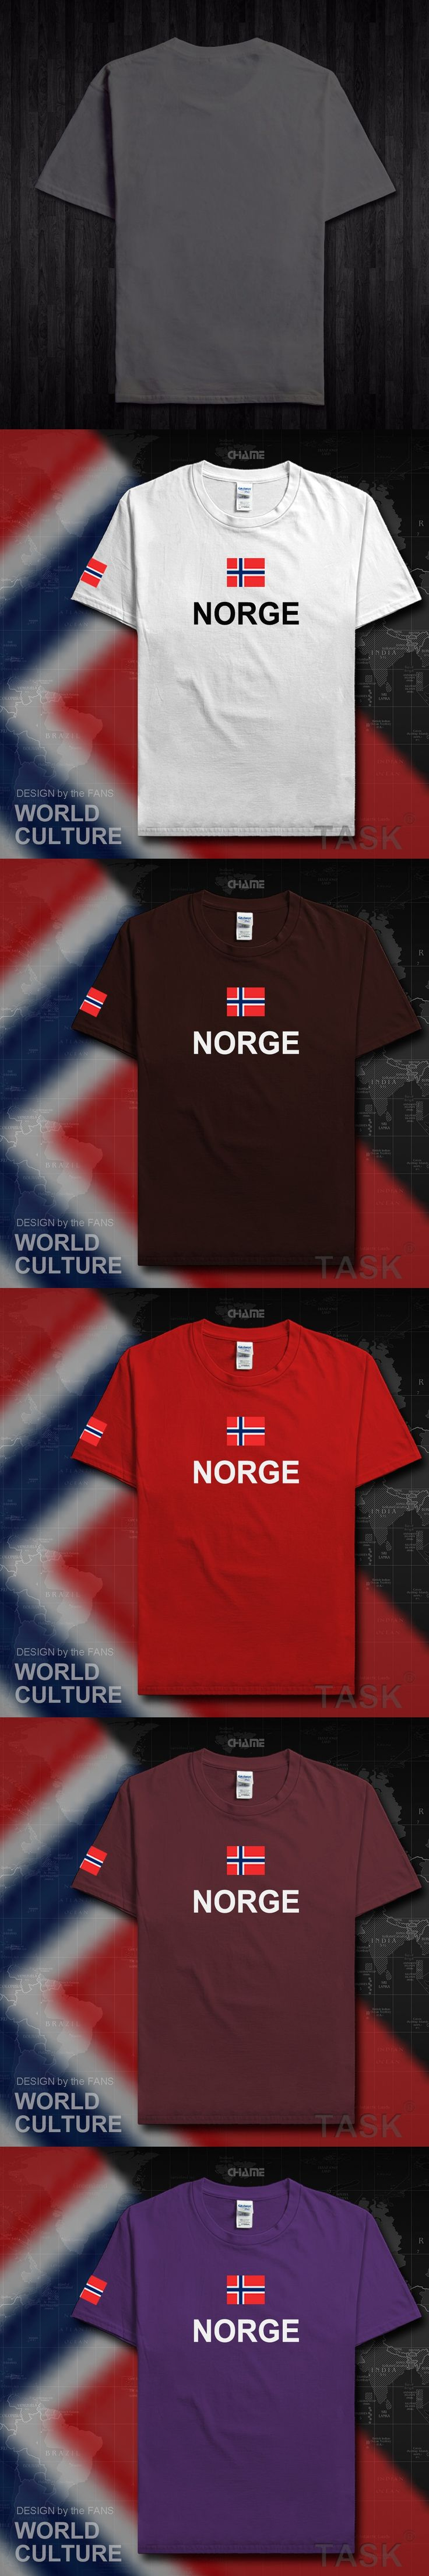 Norway Norge men t shirts fashion 2017 jerseys nation team tshirt cotton t-shirt meeting fitness gyms clothing tees country flag